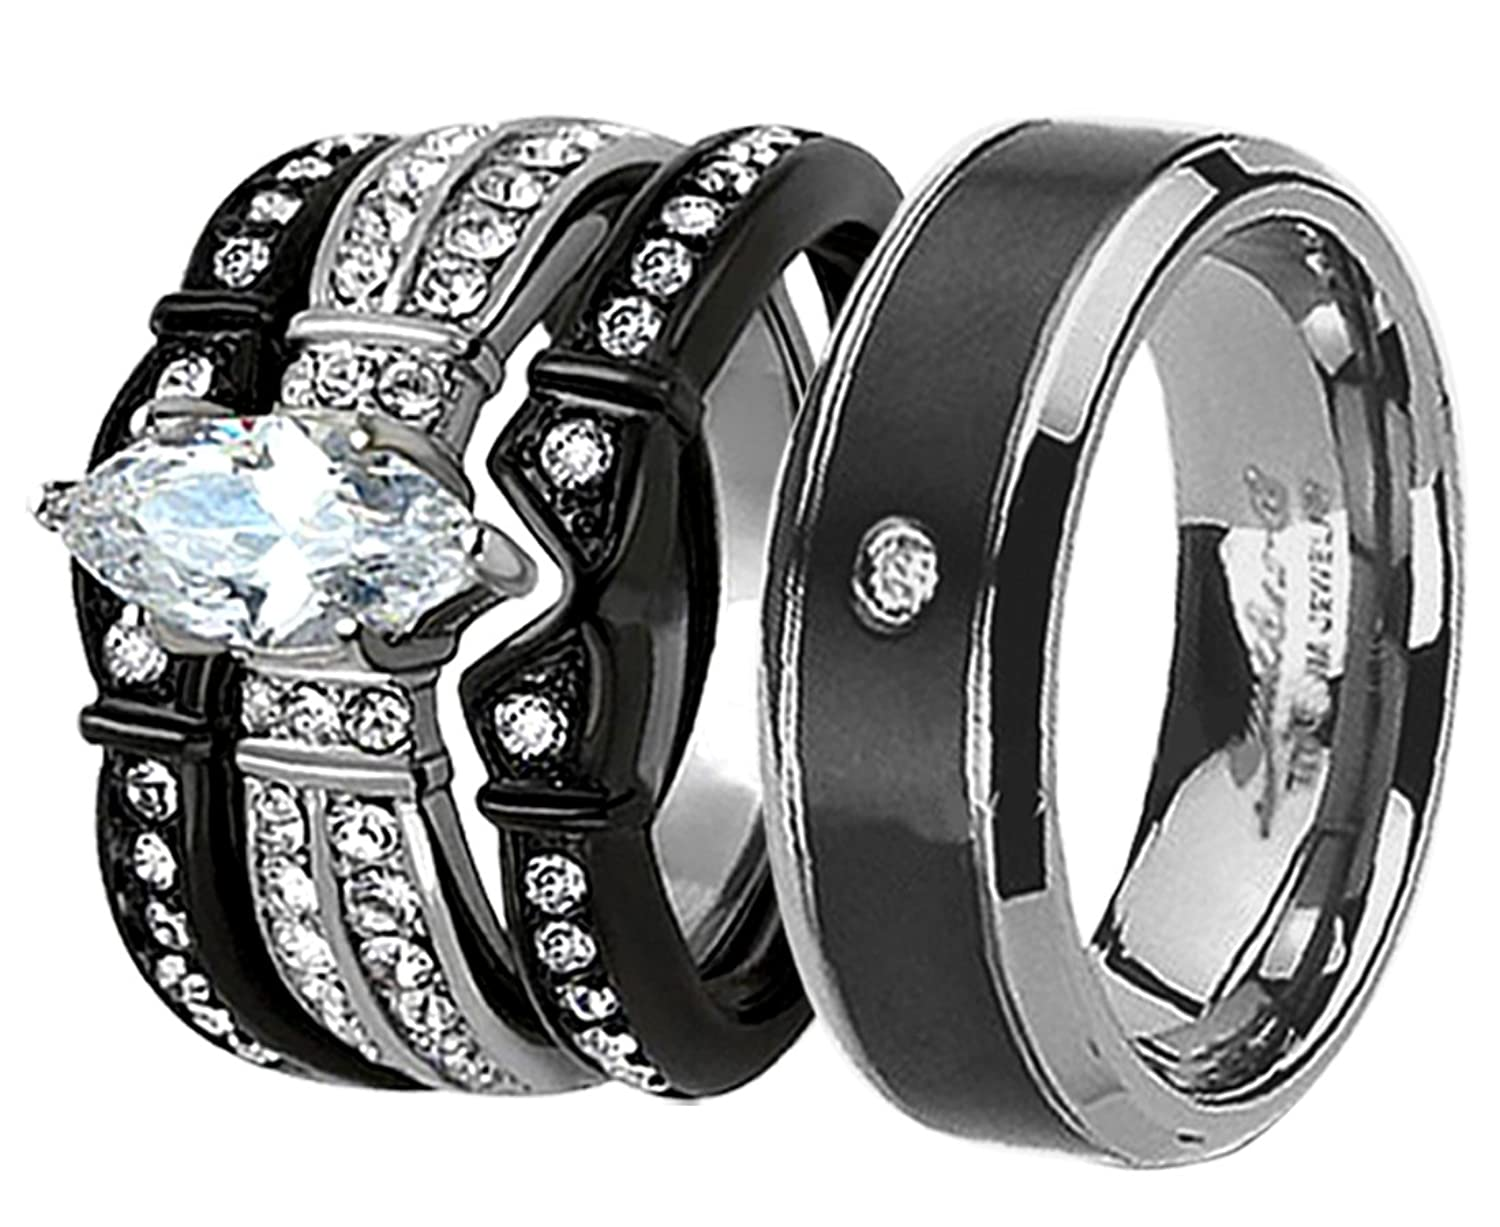 amazoncom his and hers wedding ring sets couples matching rings black womens stainless steel cubic zirconia wedding engagement ring bridal sets mens - Wedding Ring Sets For Women